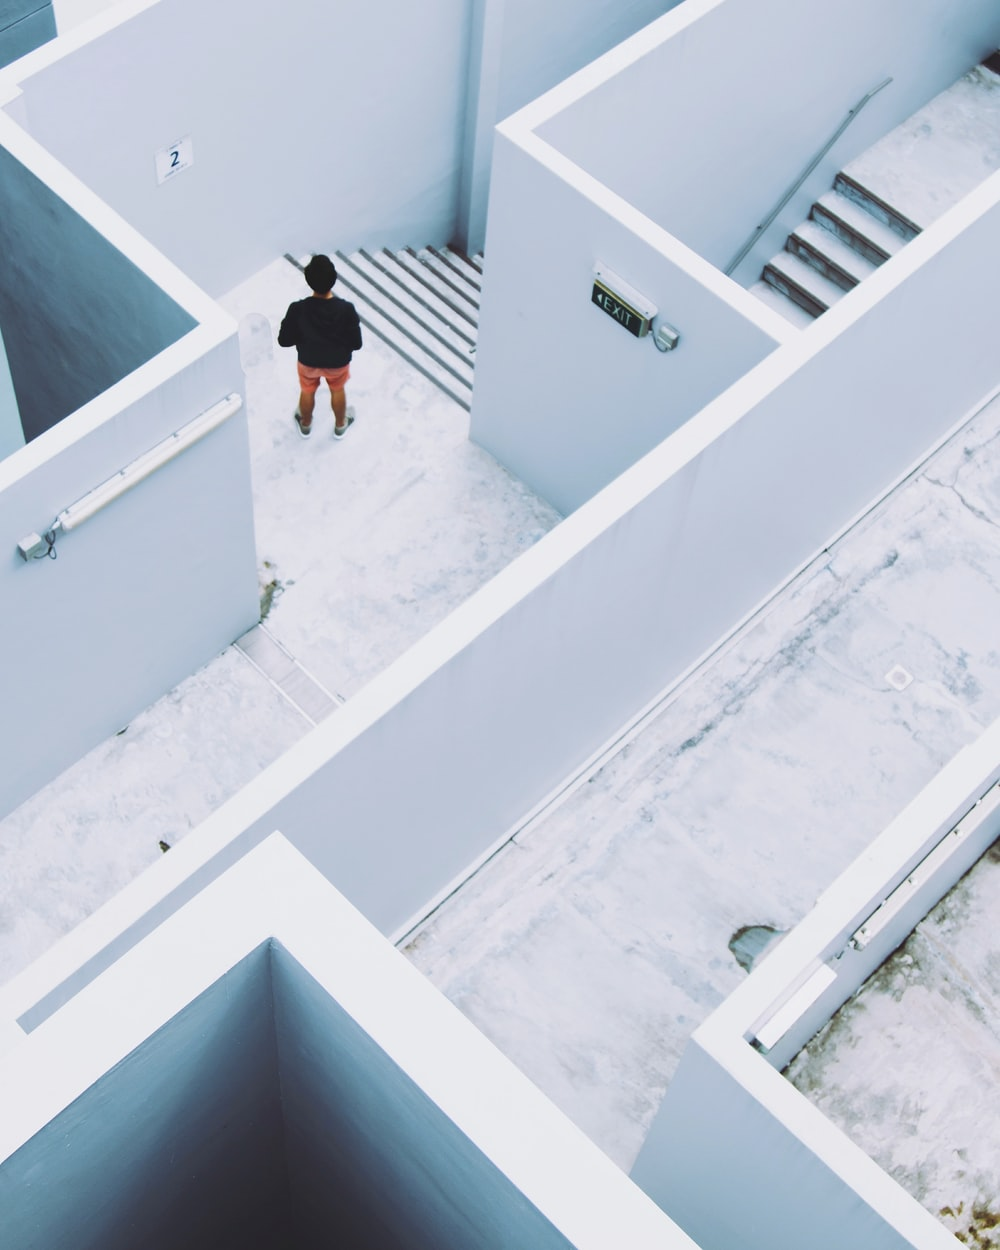 man in maze-like building